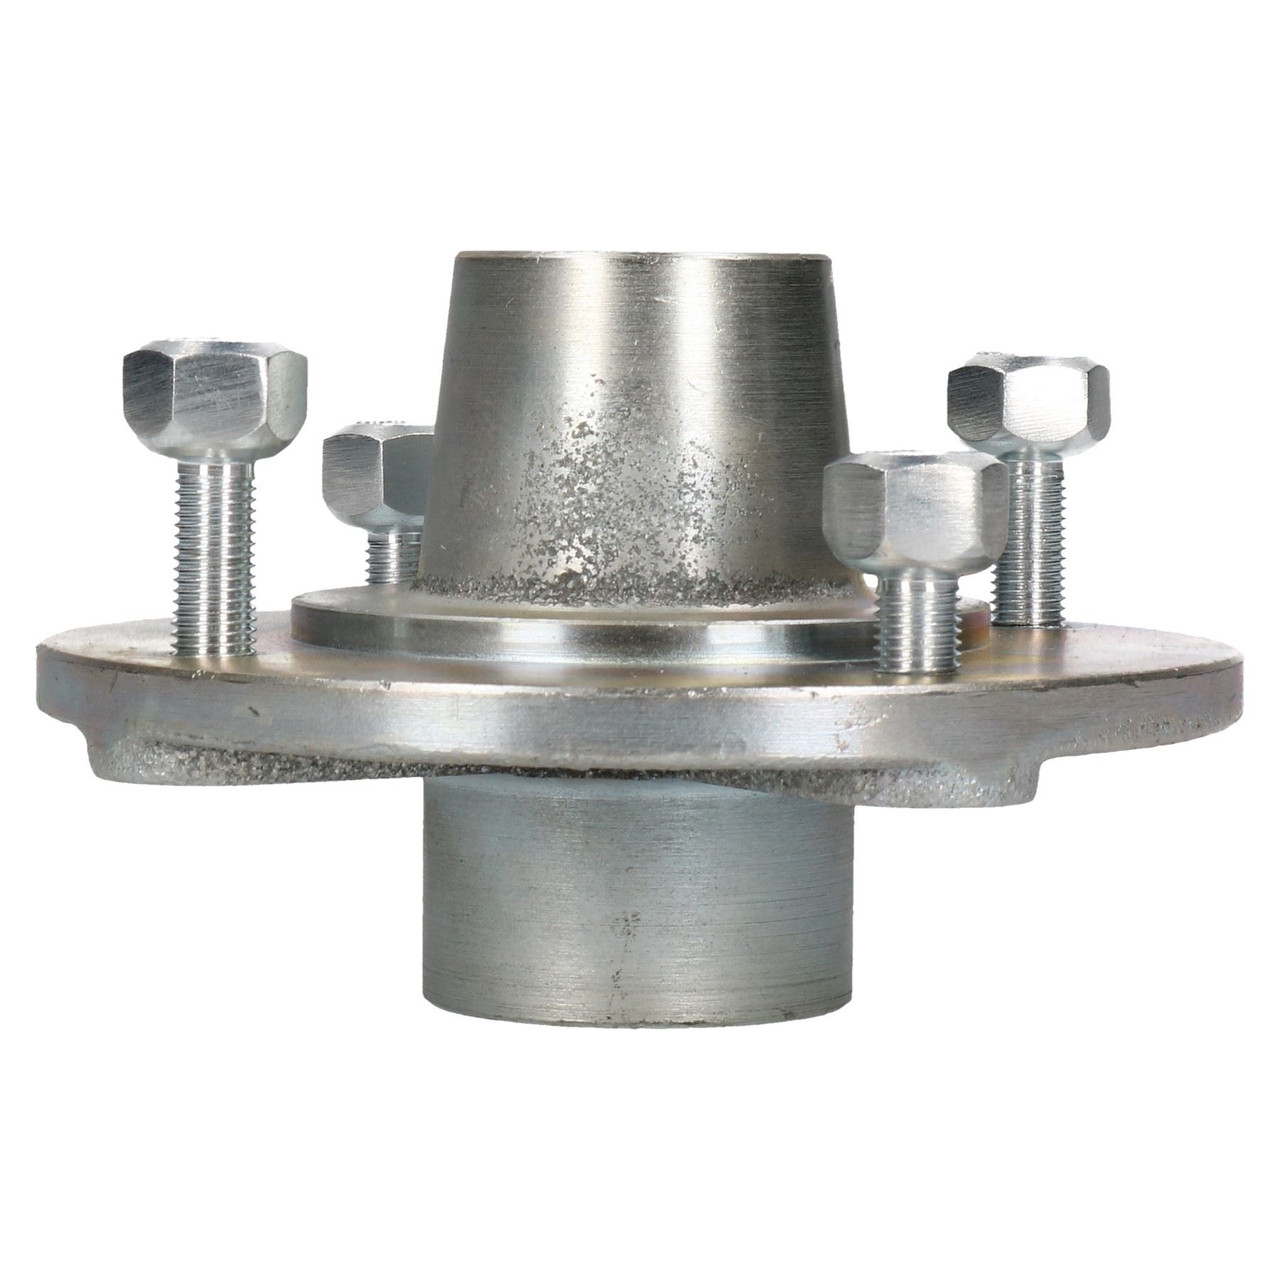 AB Tools 2 Trailer Cast Hub 4 Stud 115mm PCD For Trelgo Franc Alko Trigano French Origin